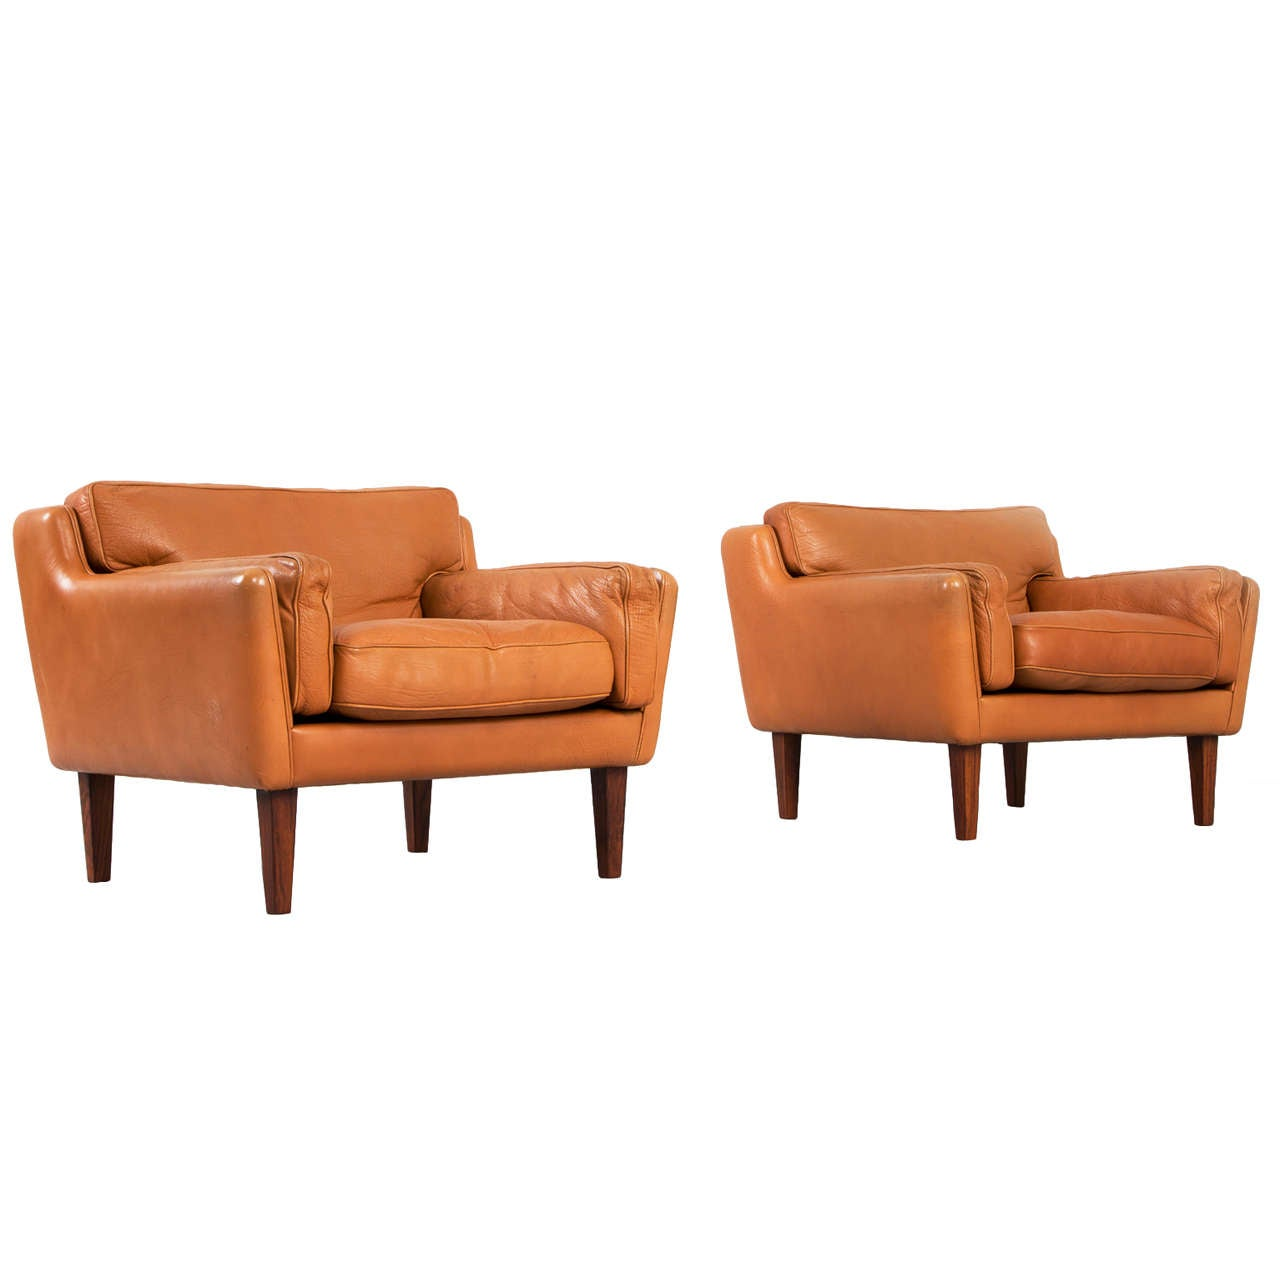 buffalo leather chair outdoor patio lounge pair of club chairs by illum wikkelso in cognac